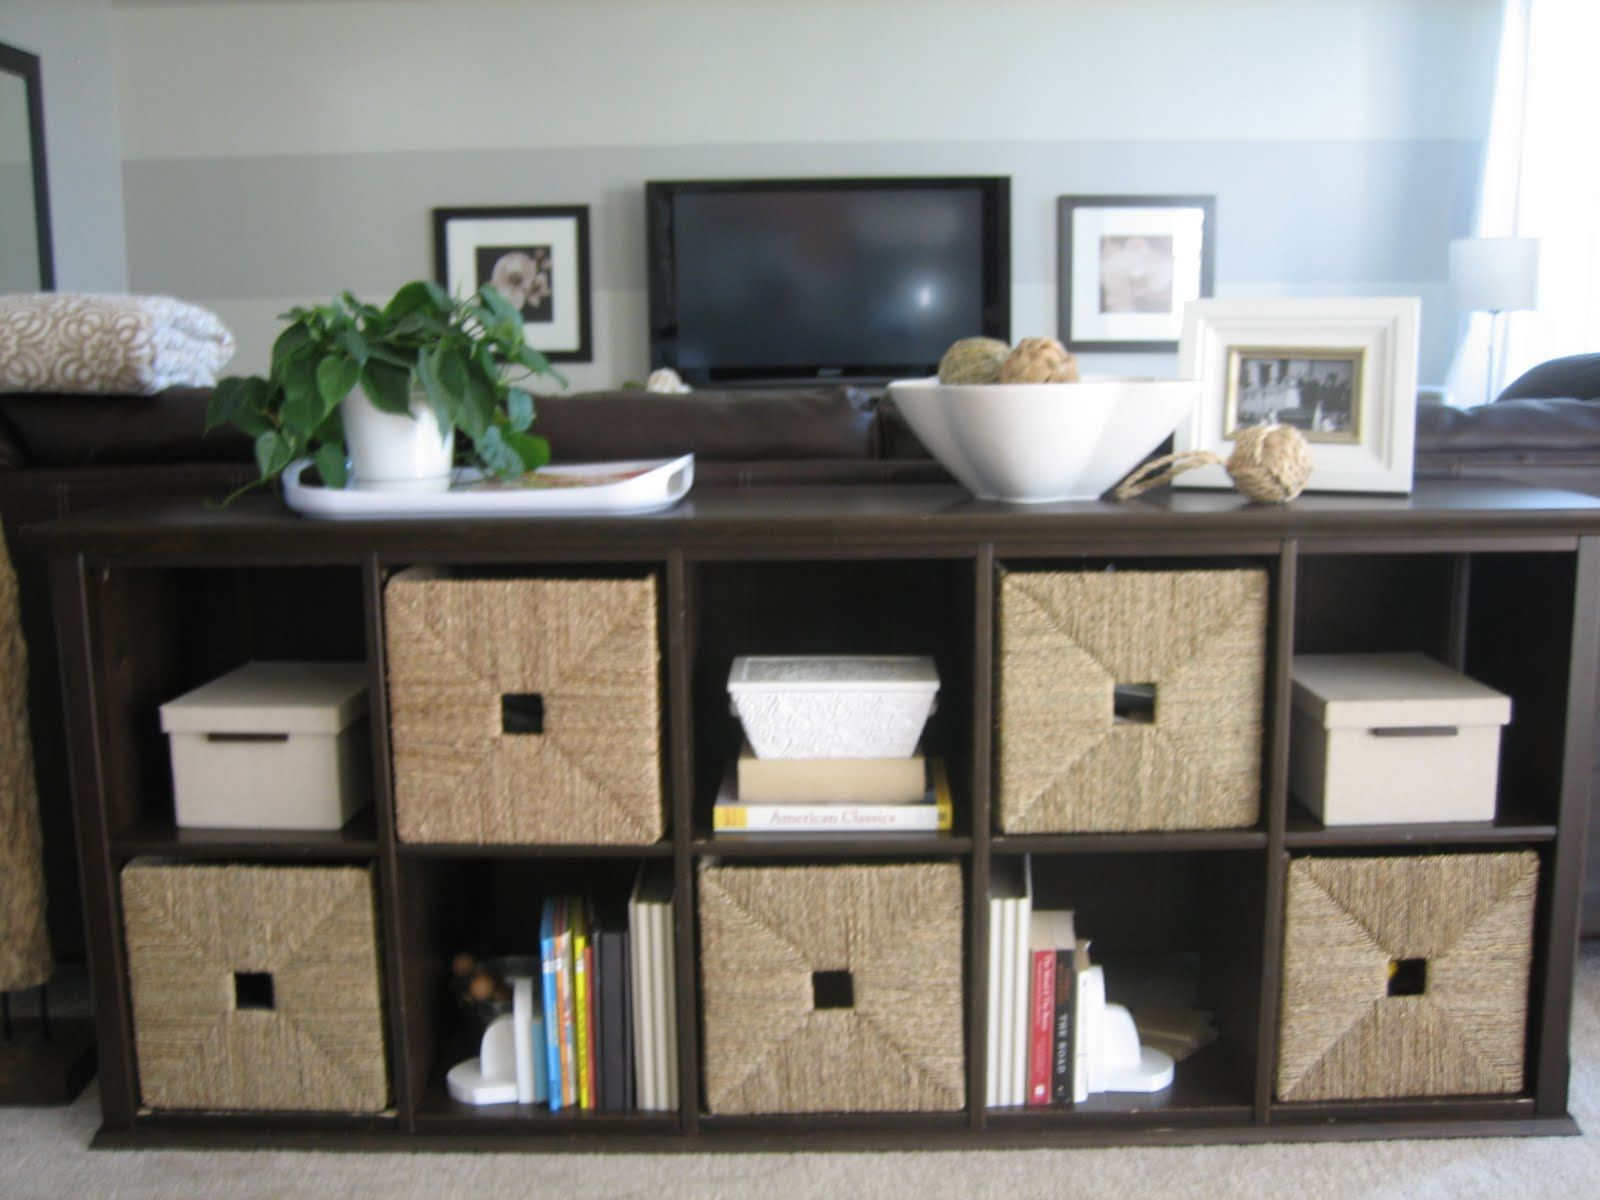 Console Table Behind Couch Google Search Kid Friendly Family